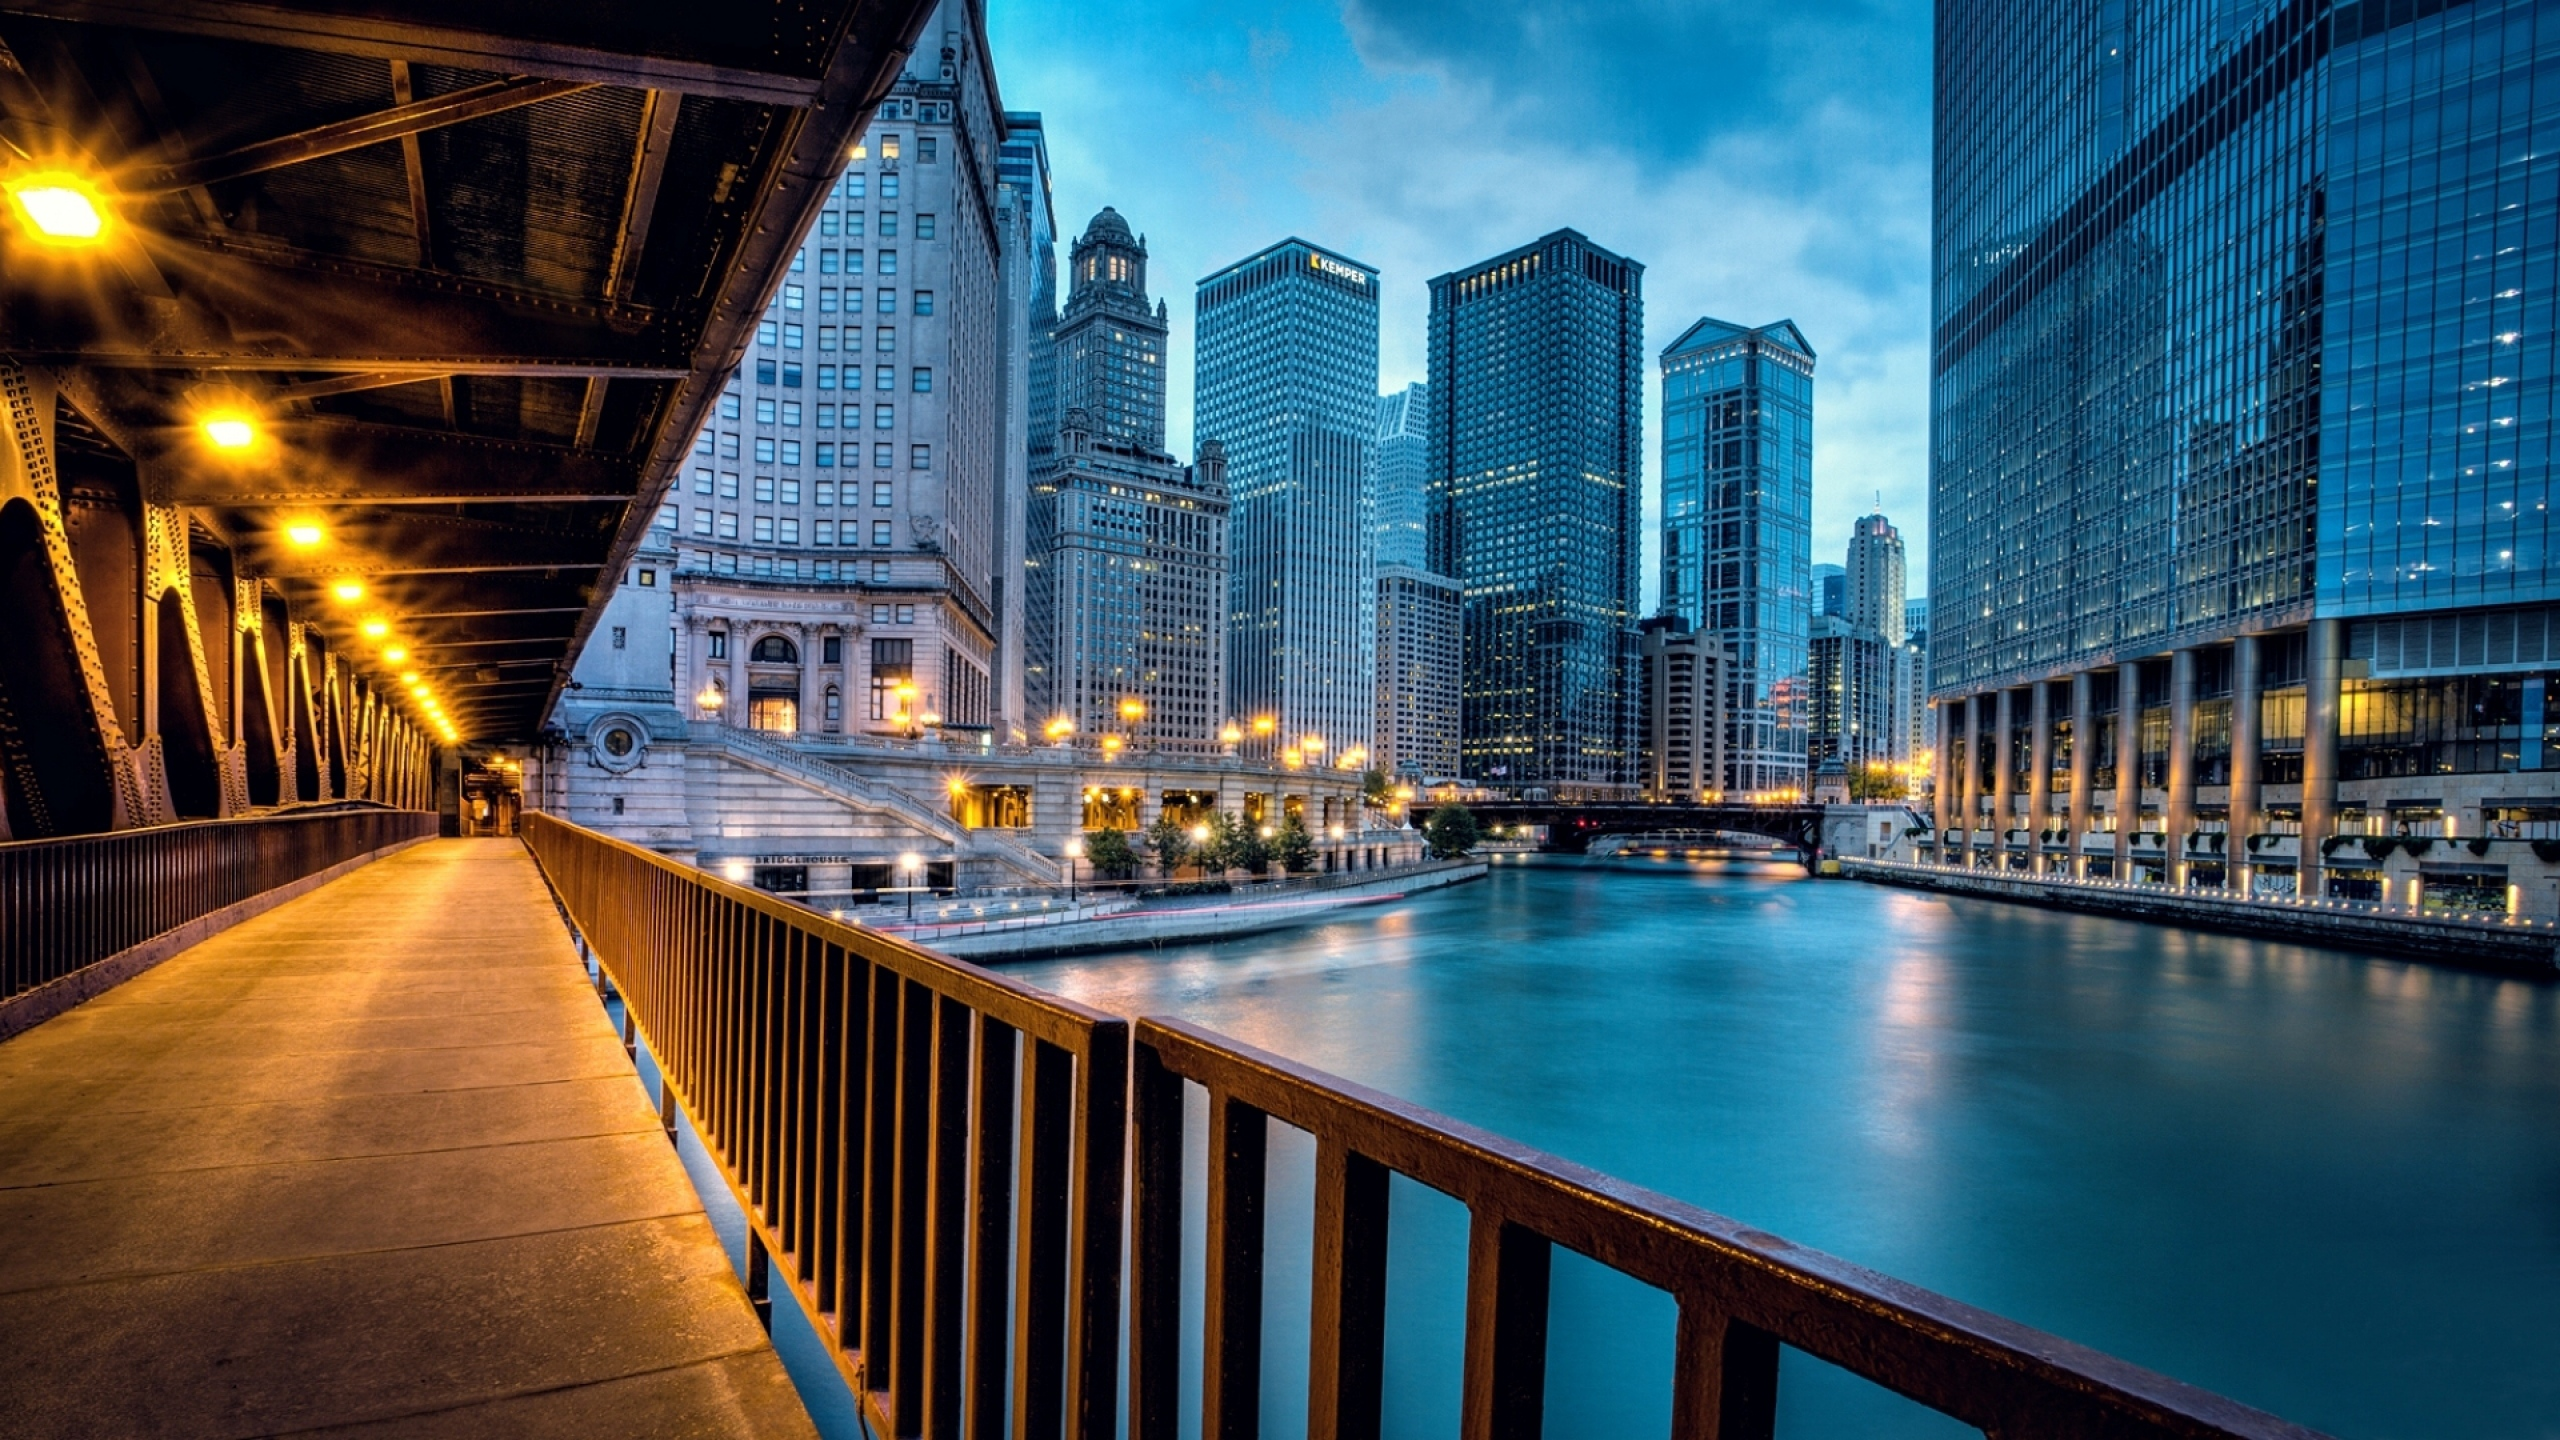 Chicago City Wallpaper Background Hd 18668 19220 Wallpapers